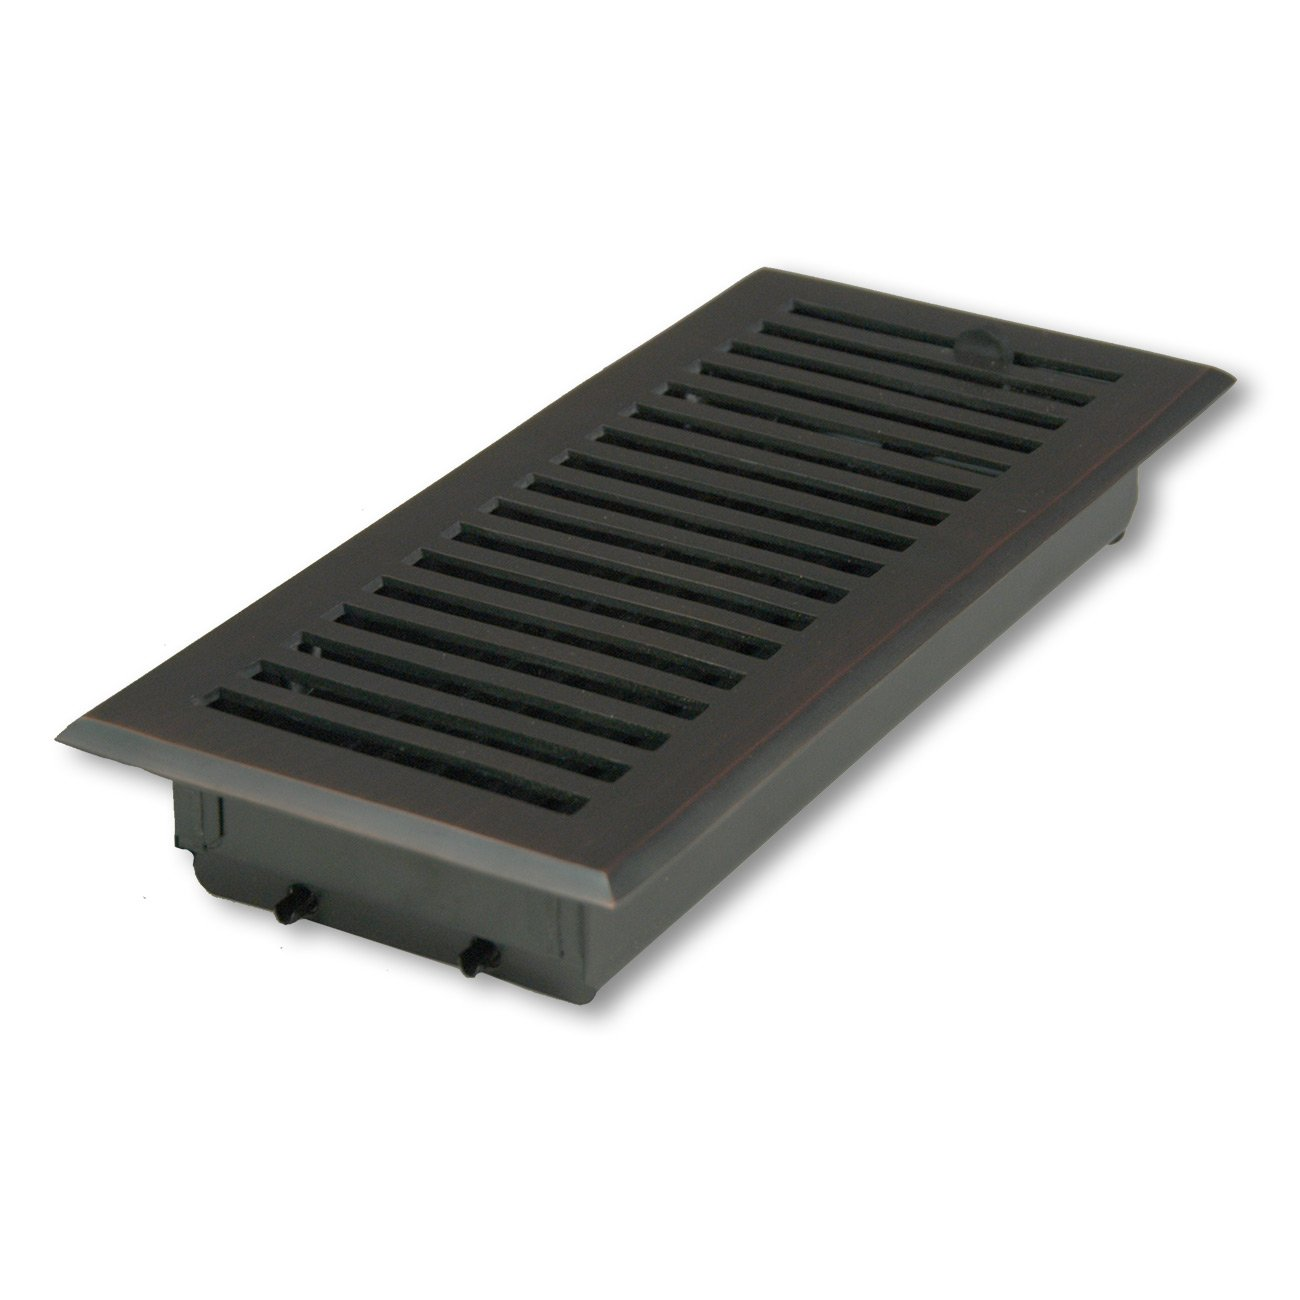 4'' X 10'' Oil-brushed Bronze Contemporary Floor Vent/Register by HRV